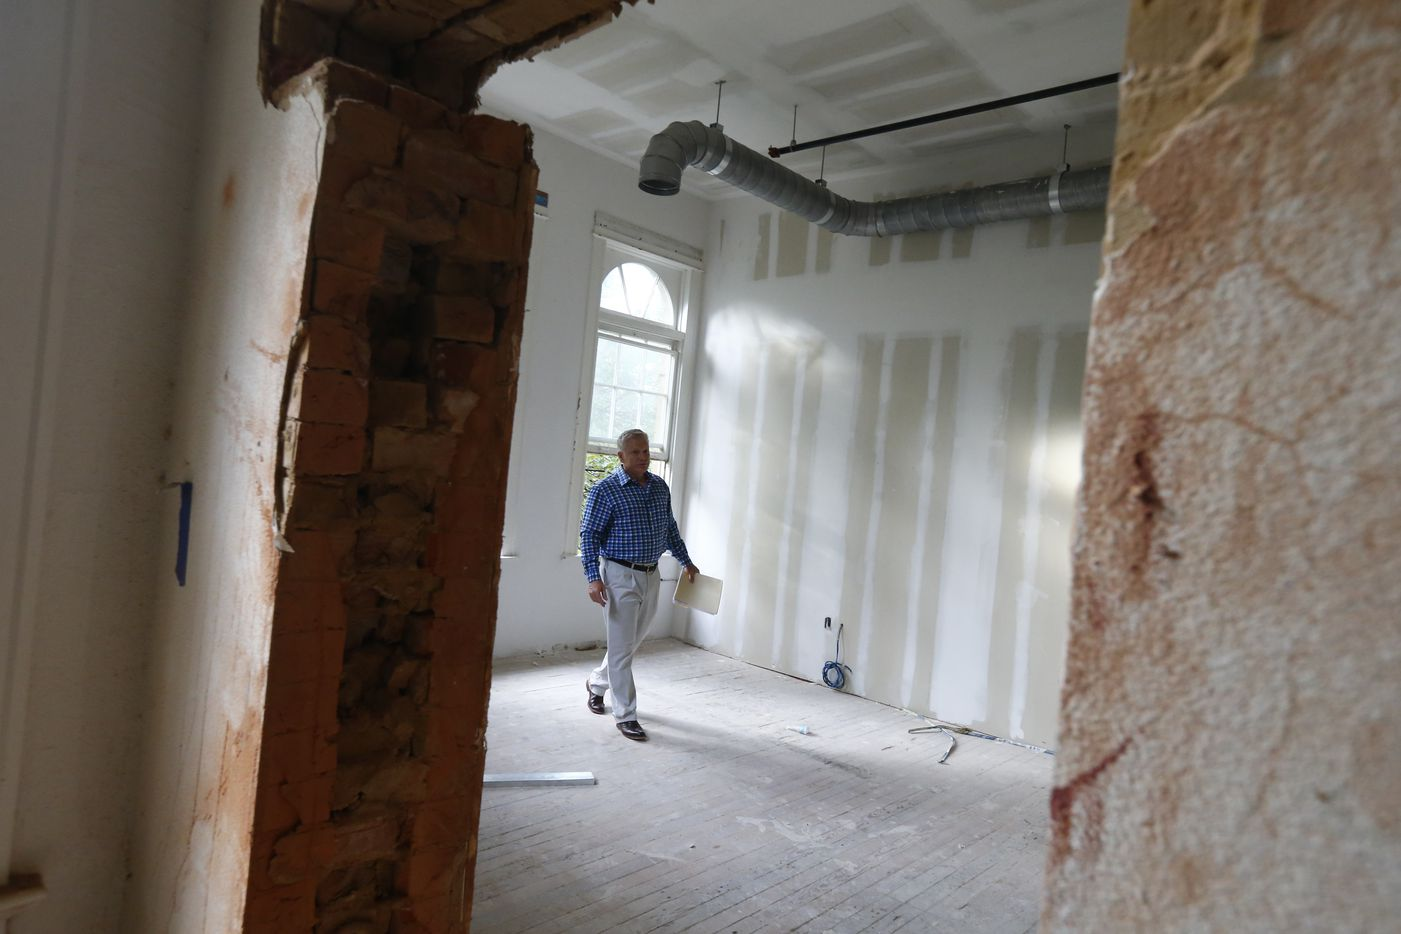 Developer Allan Brown in a room under construction in the historic Davy Crockett School, which is being converted into in apartments in Dallas.